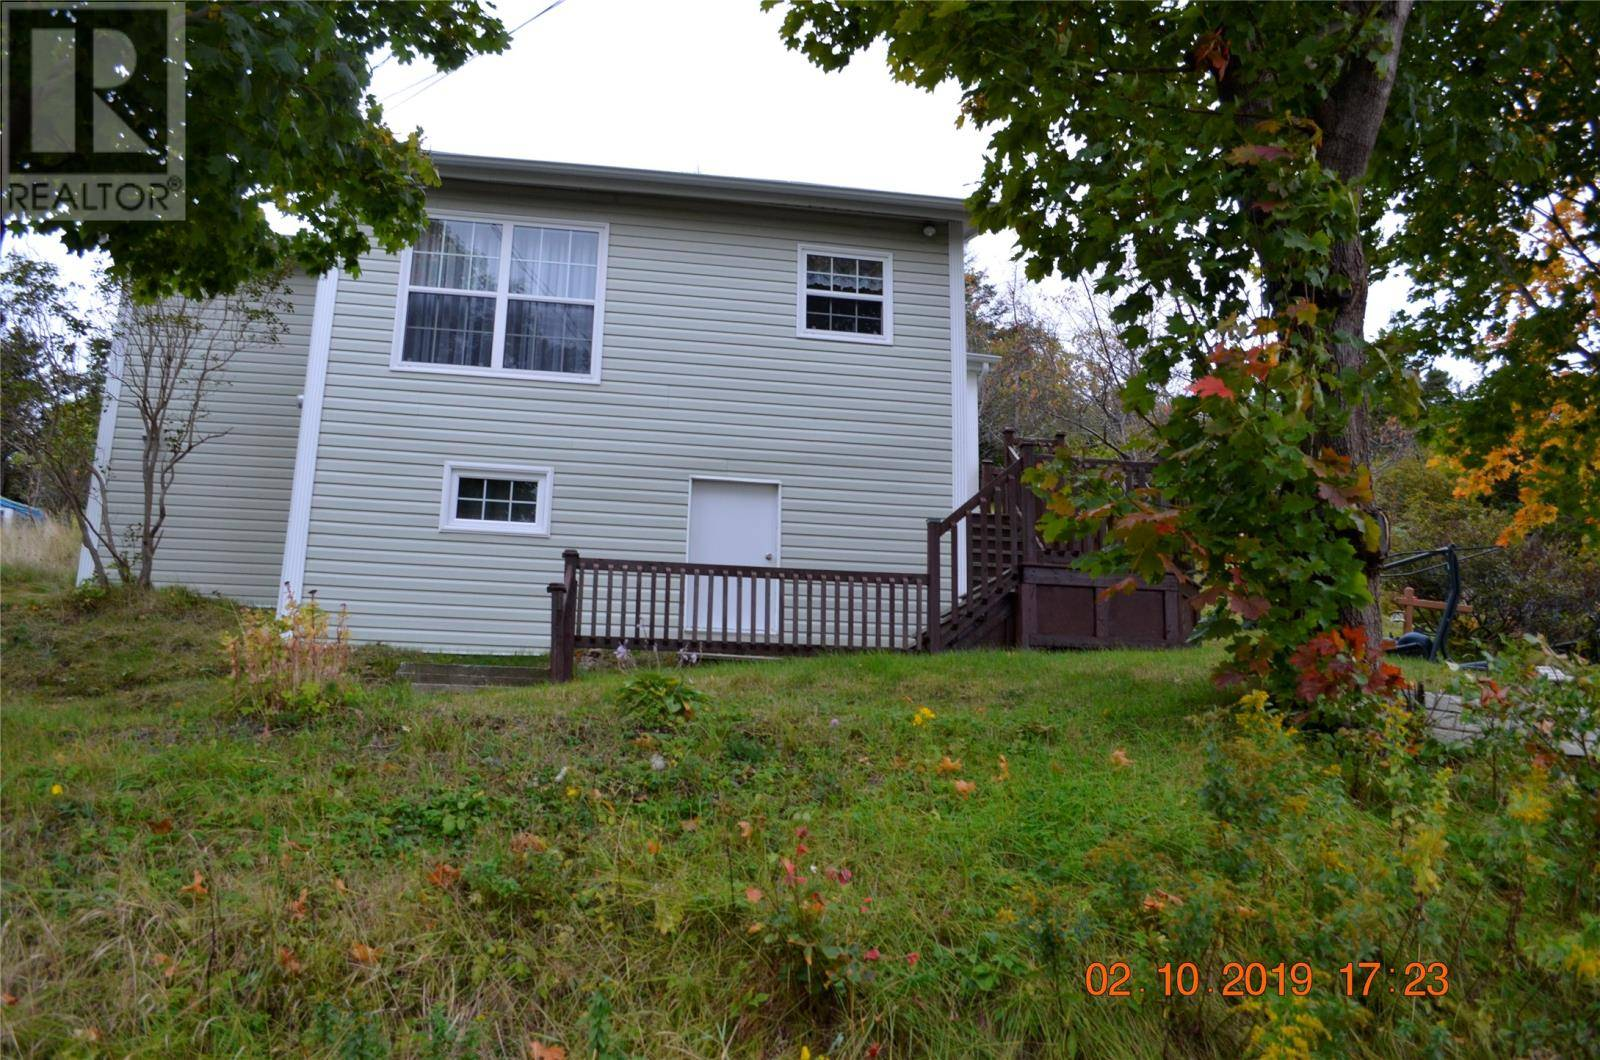 House for sale at 1675 Portugal Cove Rd Portugal Cove Newfoundland - MLS: 1205020